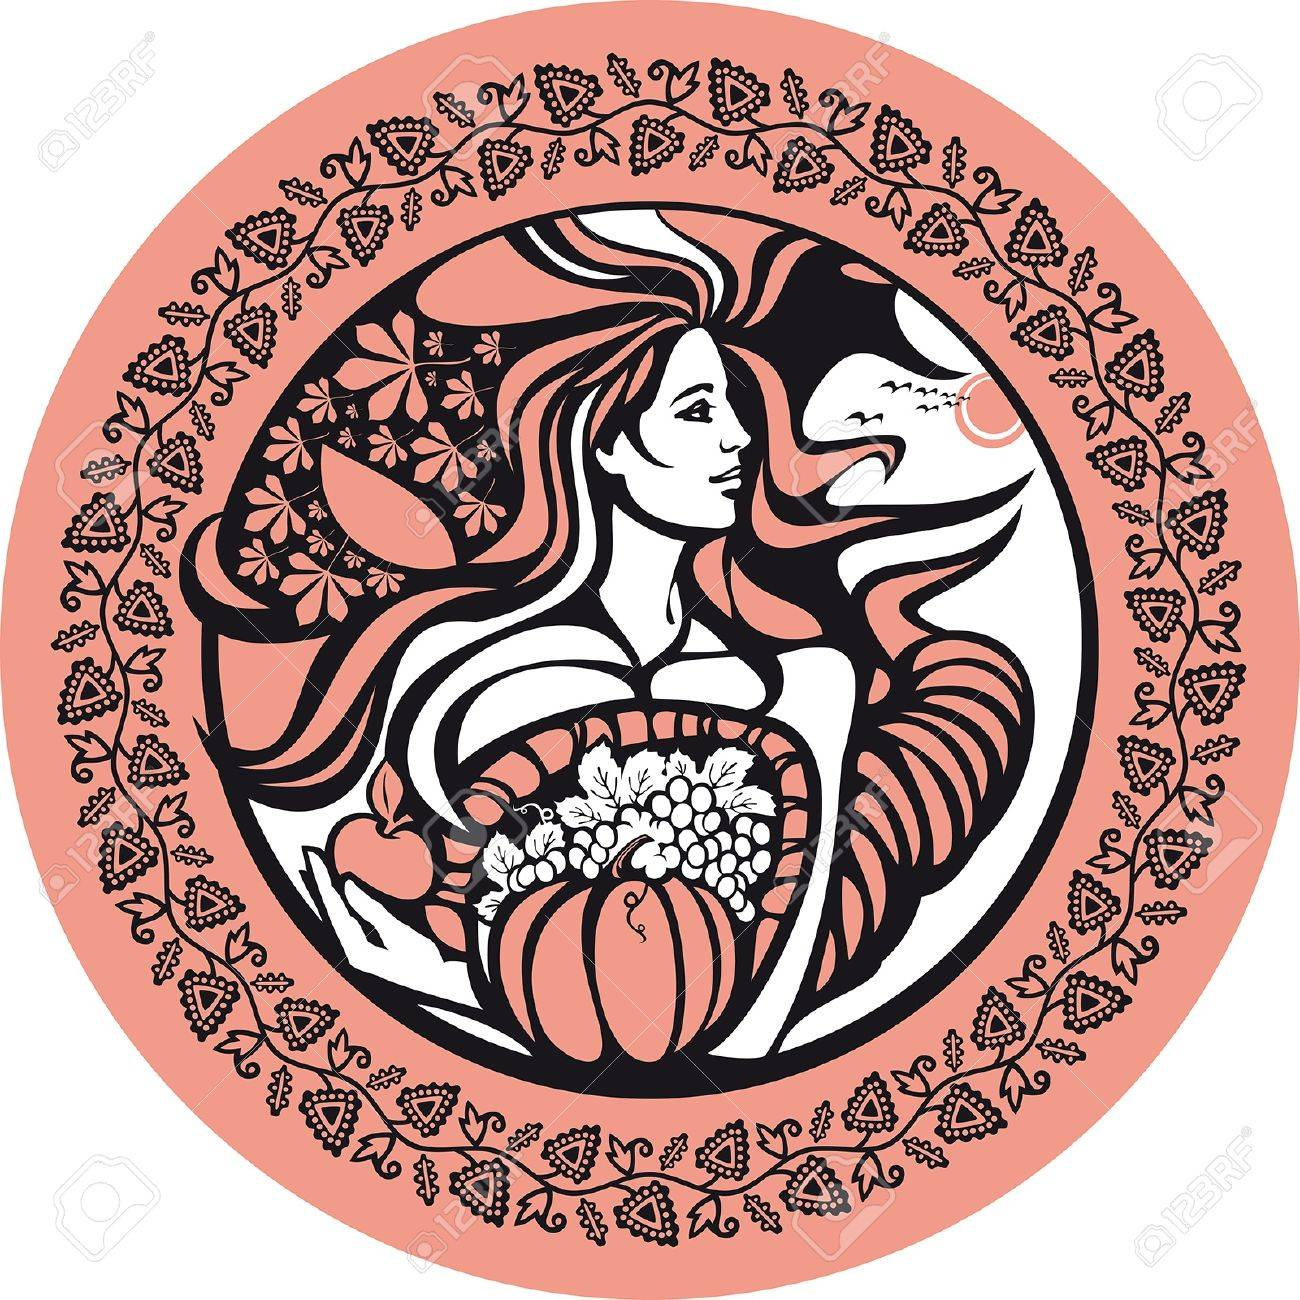 October. There is a woman who holds a cornucopia. She symbolizes an autumn and fertility of soil. Stock Vector - 12156999